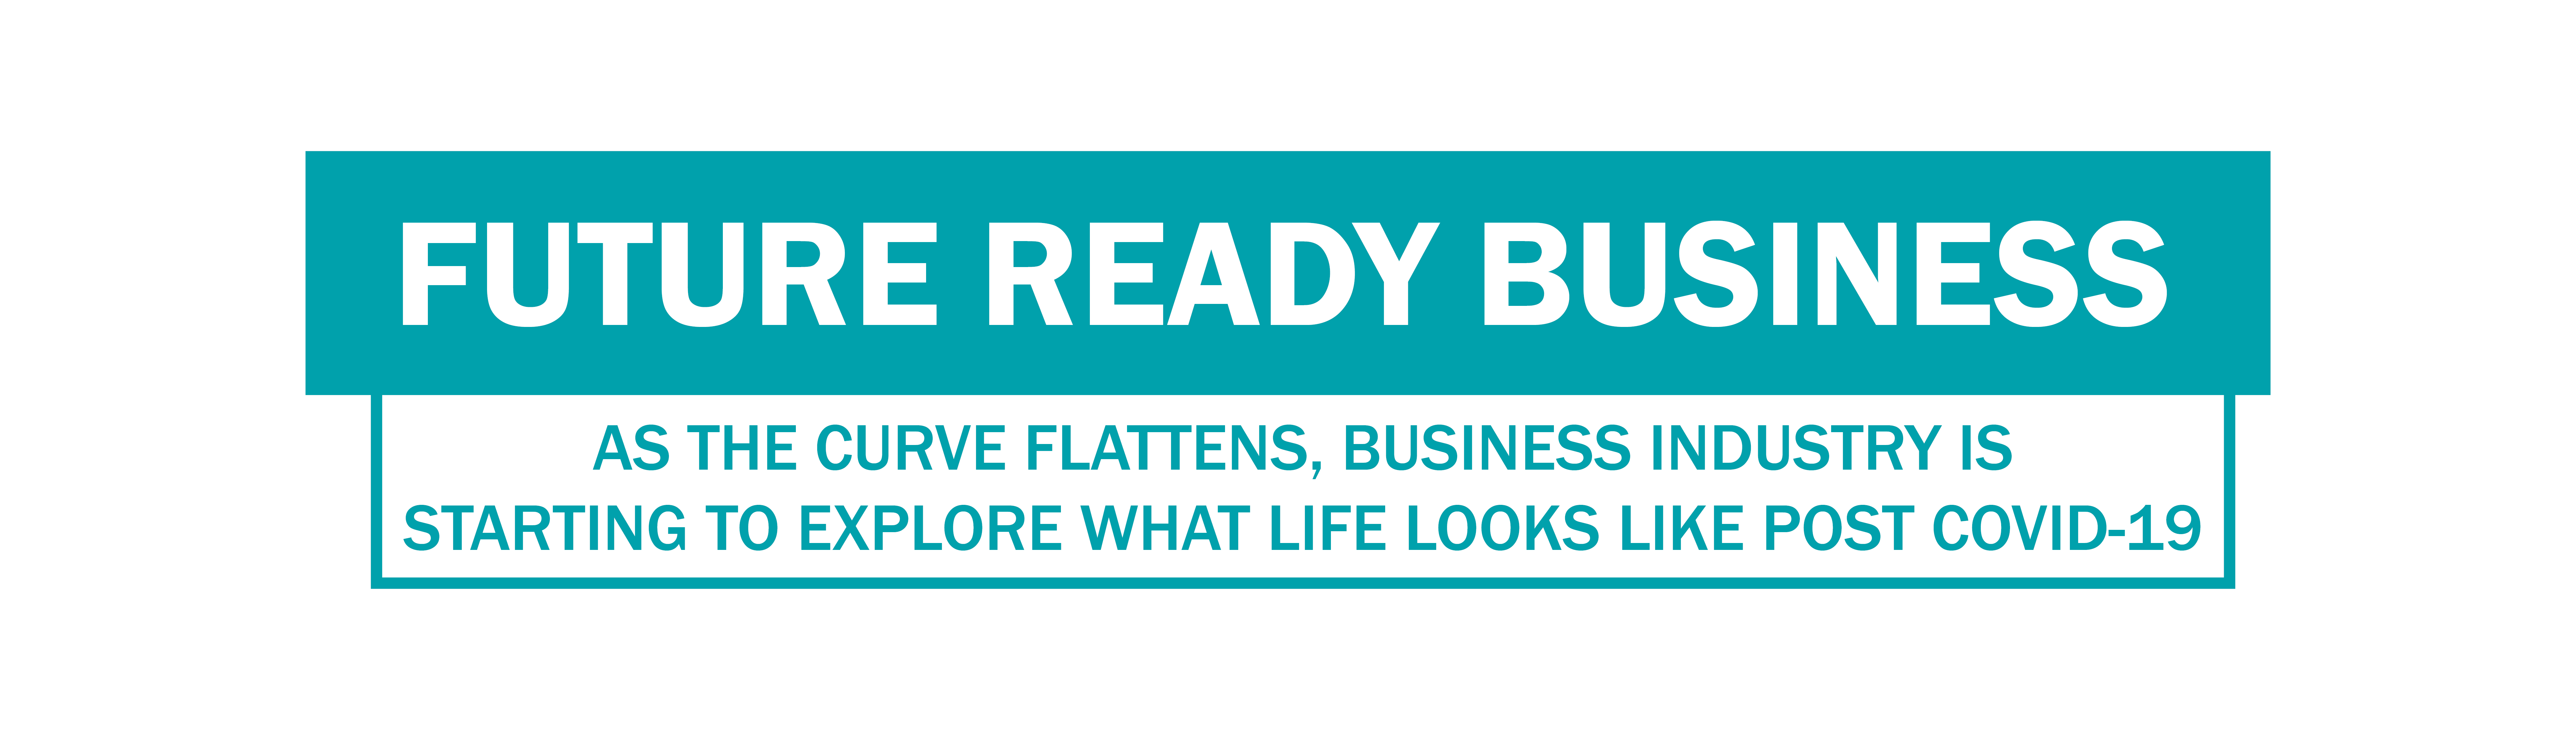 future ready business header r0